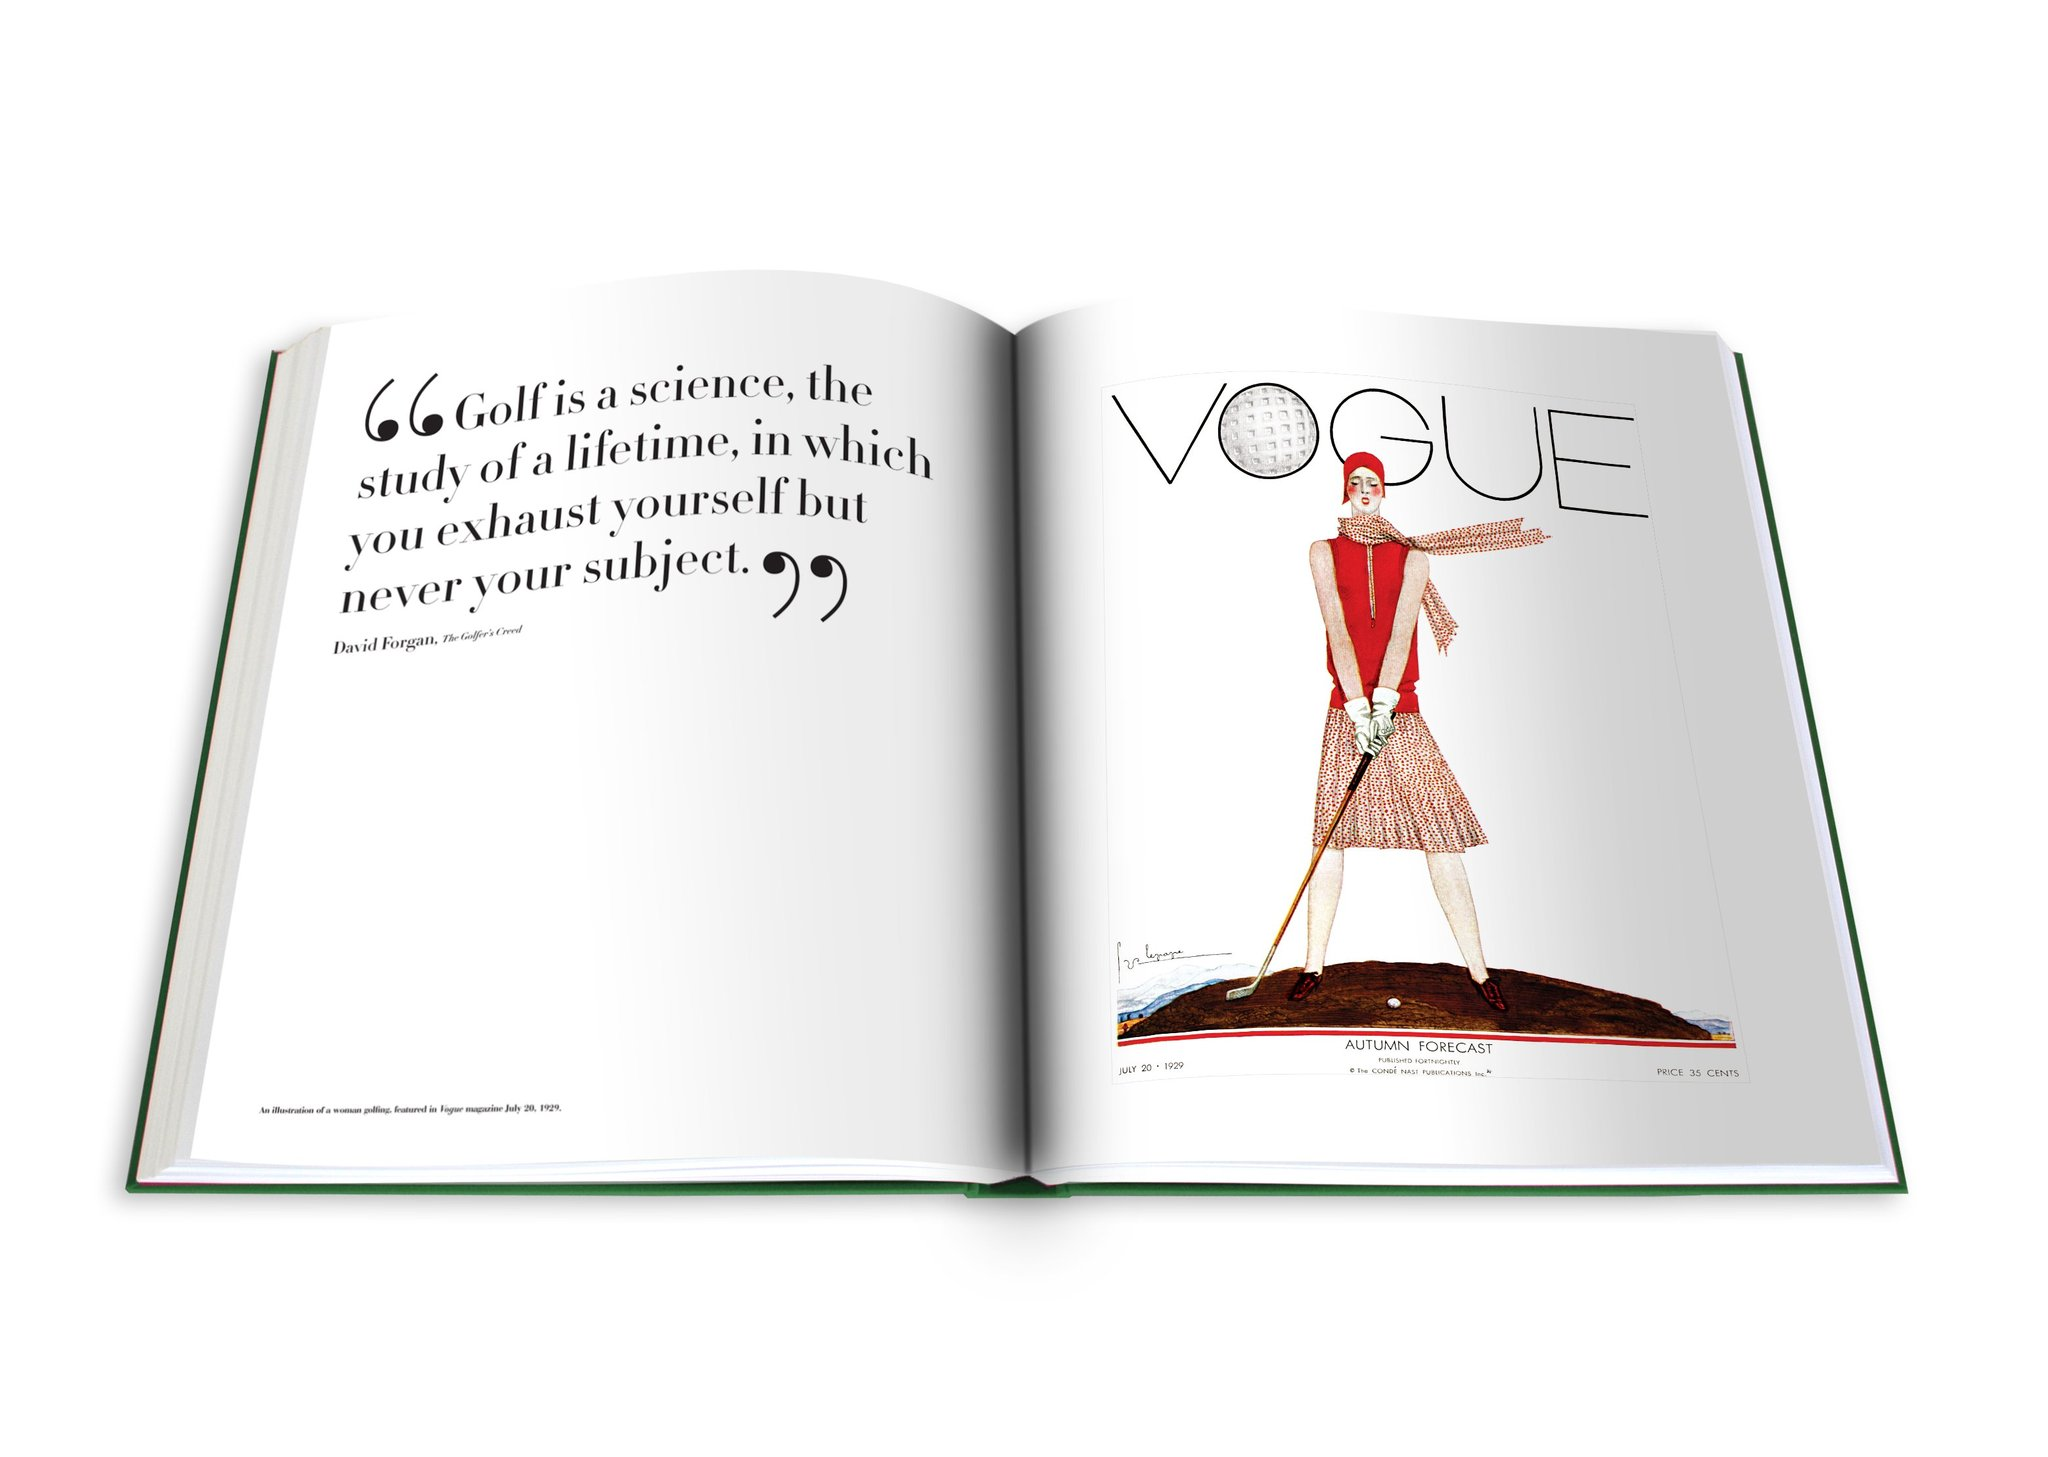 Impossible Collection of Golf Assouline - The Luxe Diary's Valentine's Gift List